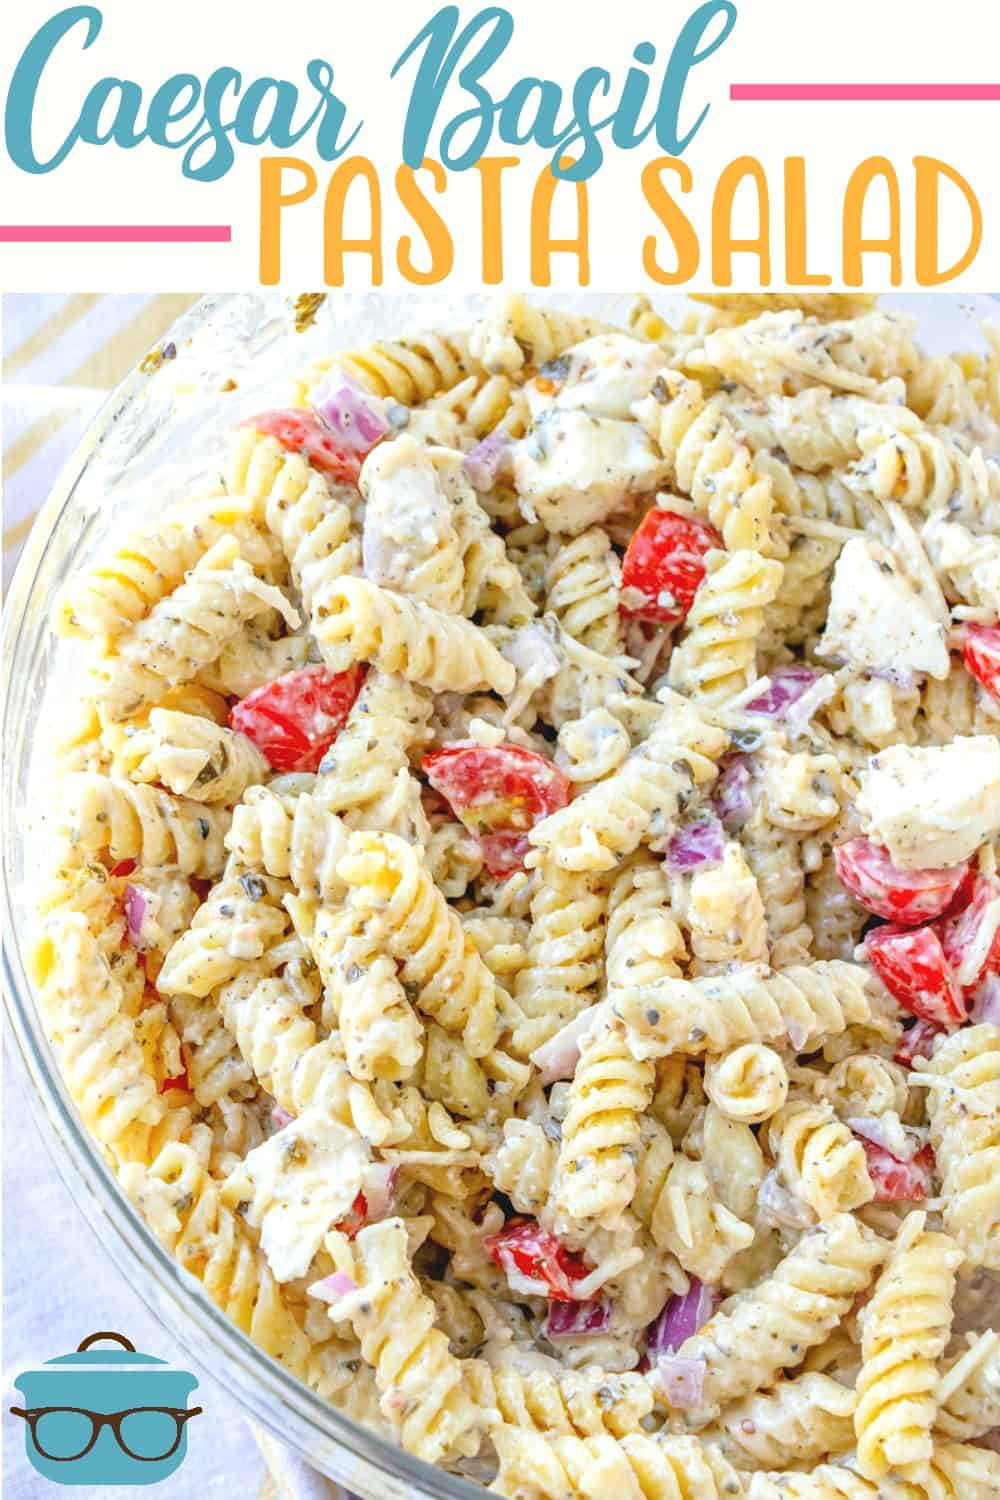 This Caesar Basil Pasta Salad is a unique but simple recipe. Made with rotini pasta, a caesar basil pesto dressing, cherry tomatoes and fresh mozzarella!